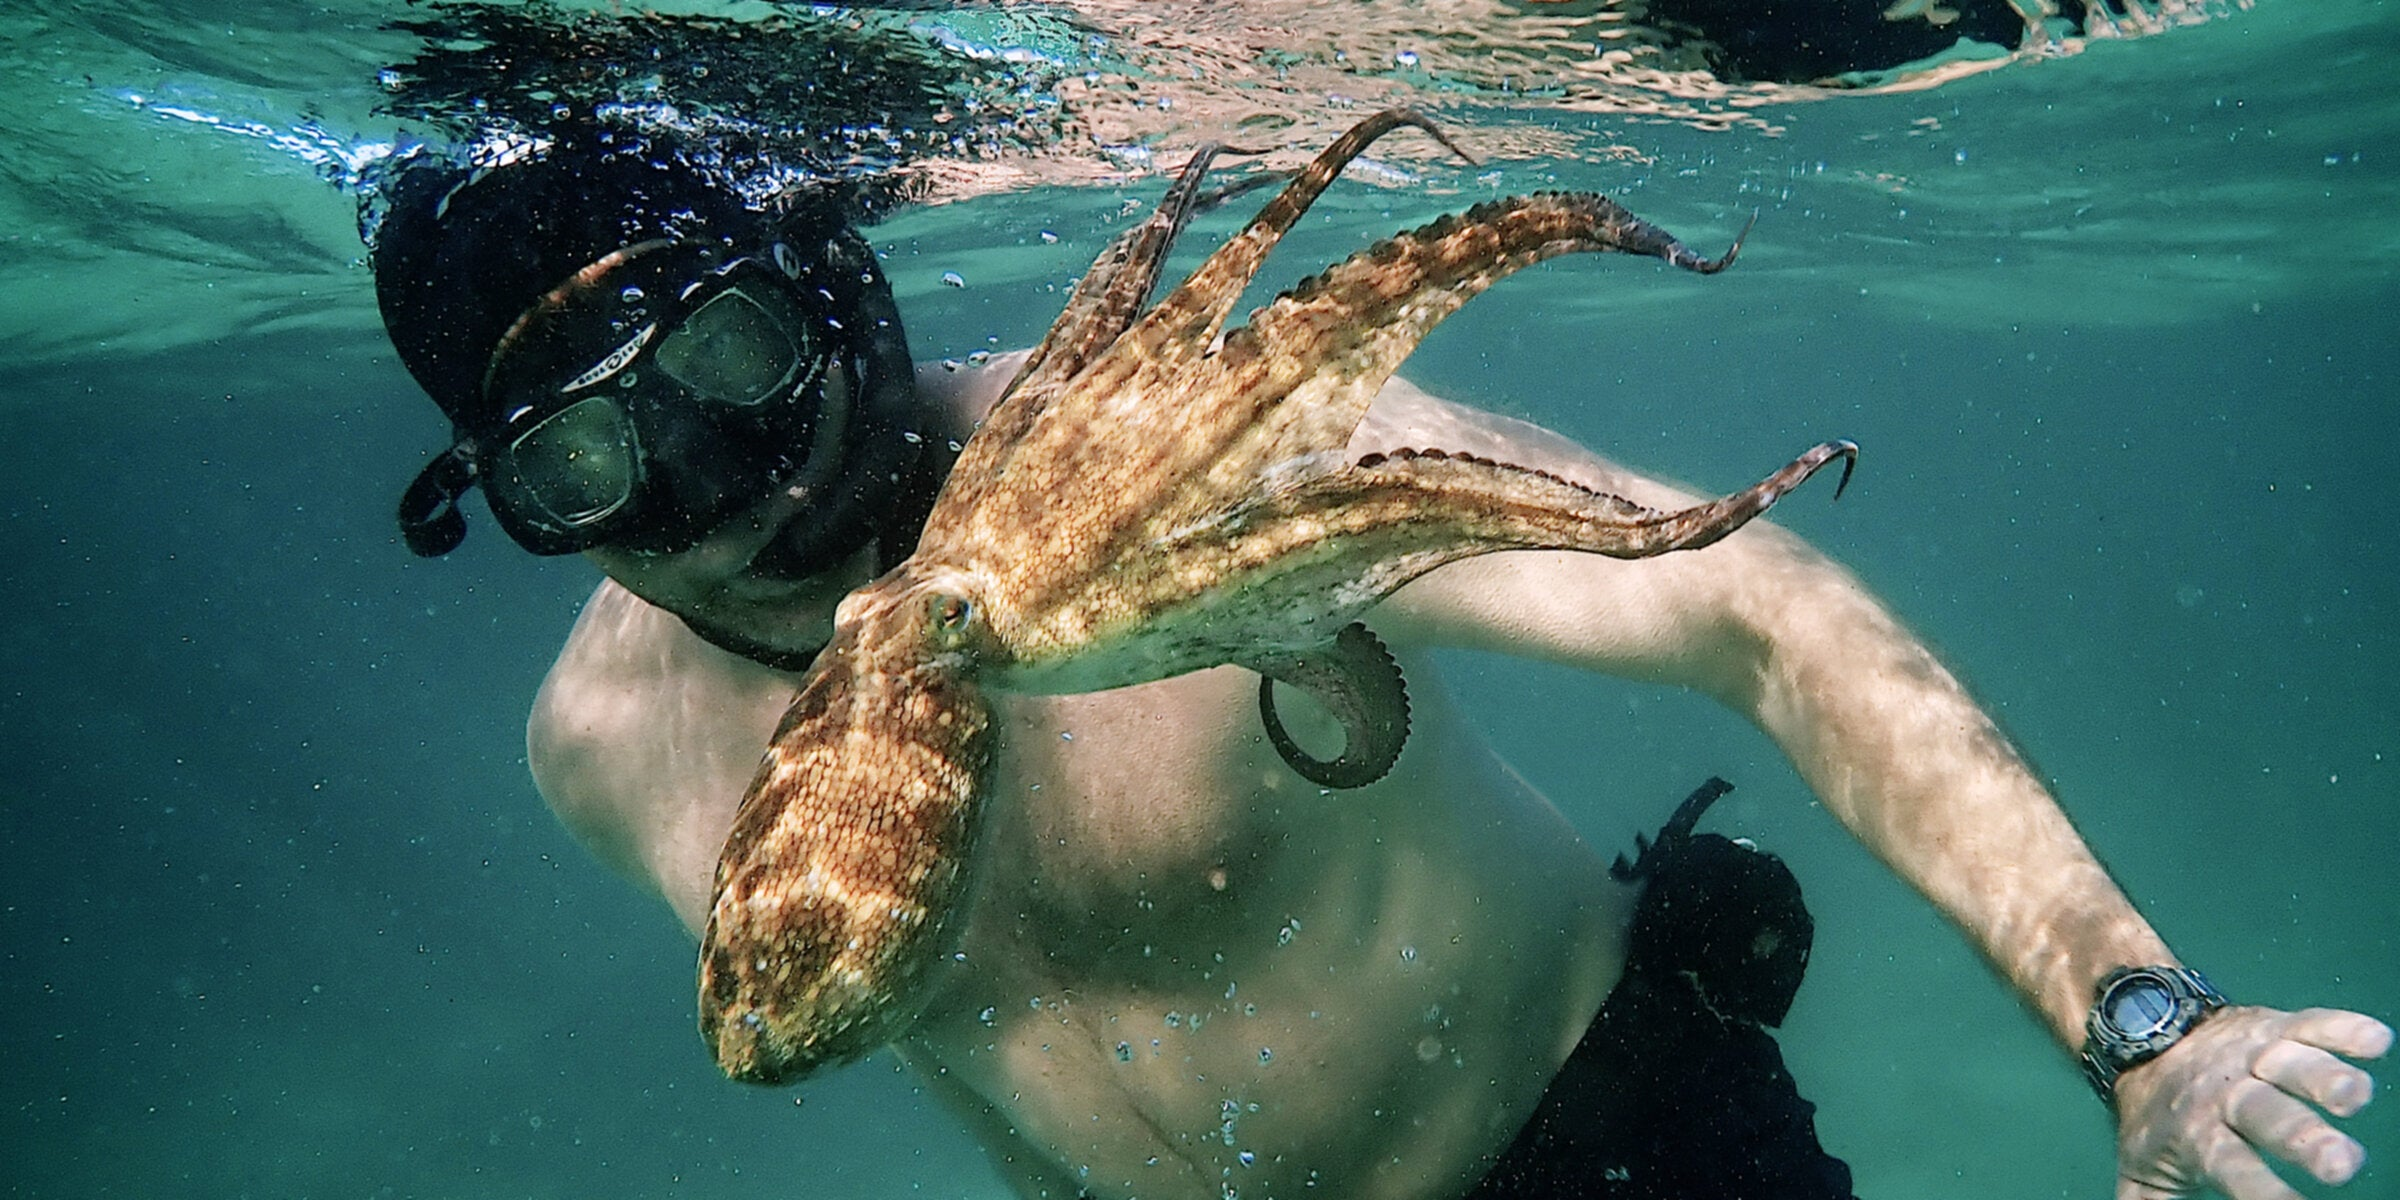 Watching Netflix's My Octopus Teacher, I wonder why we like to imagine animals are our friends